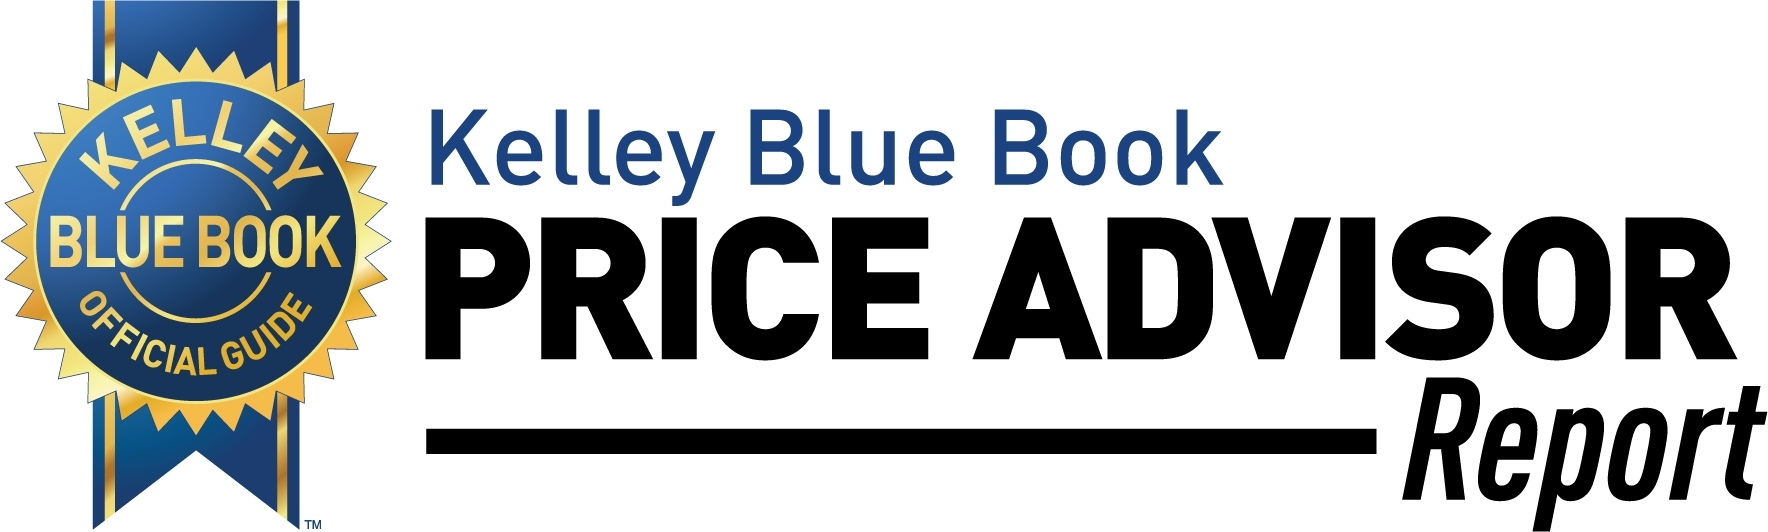 vauto genius labs launches kelley blue book price advisor report business wire. Black Bedroom Furniture Sets. Home Design Ideas